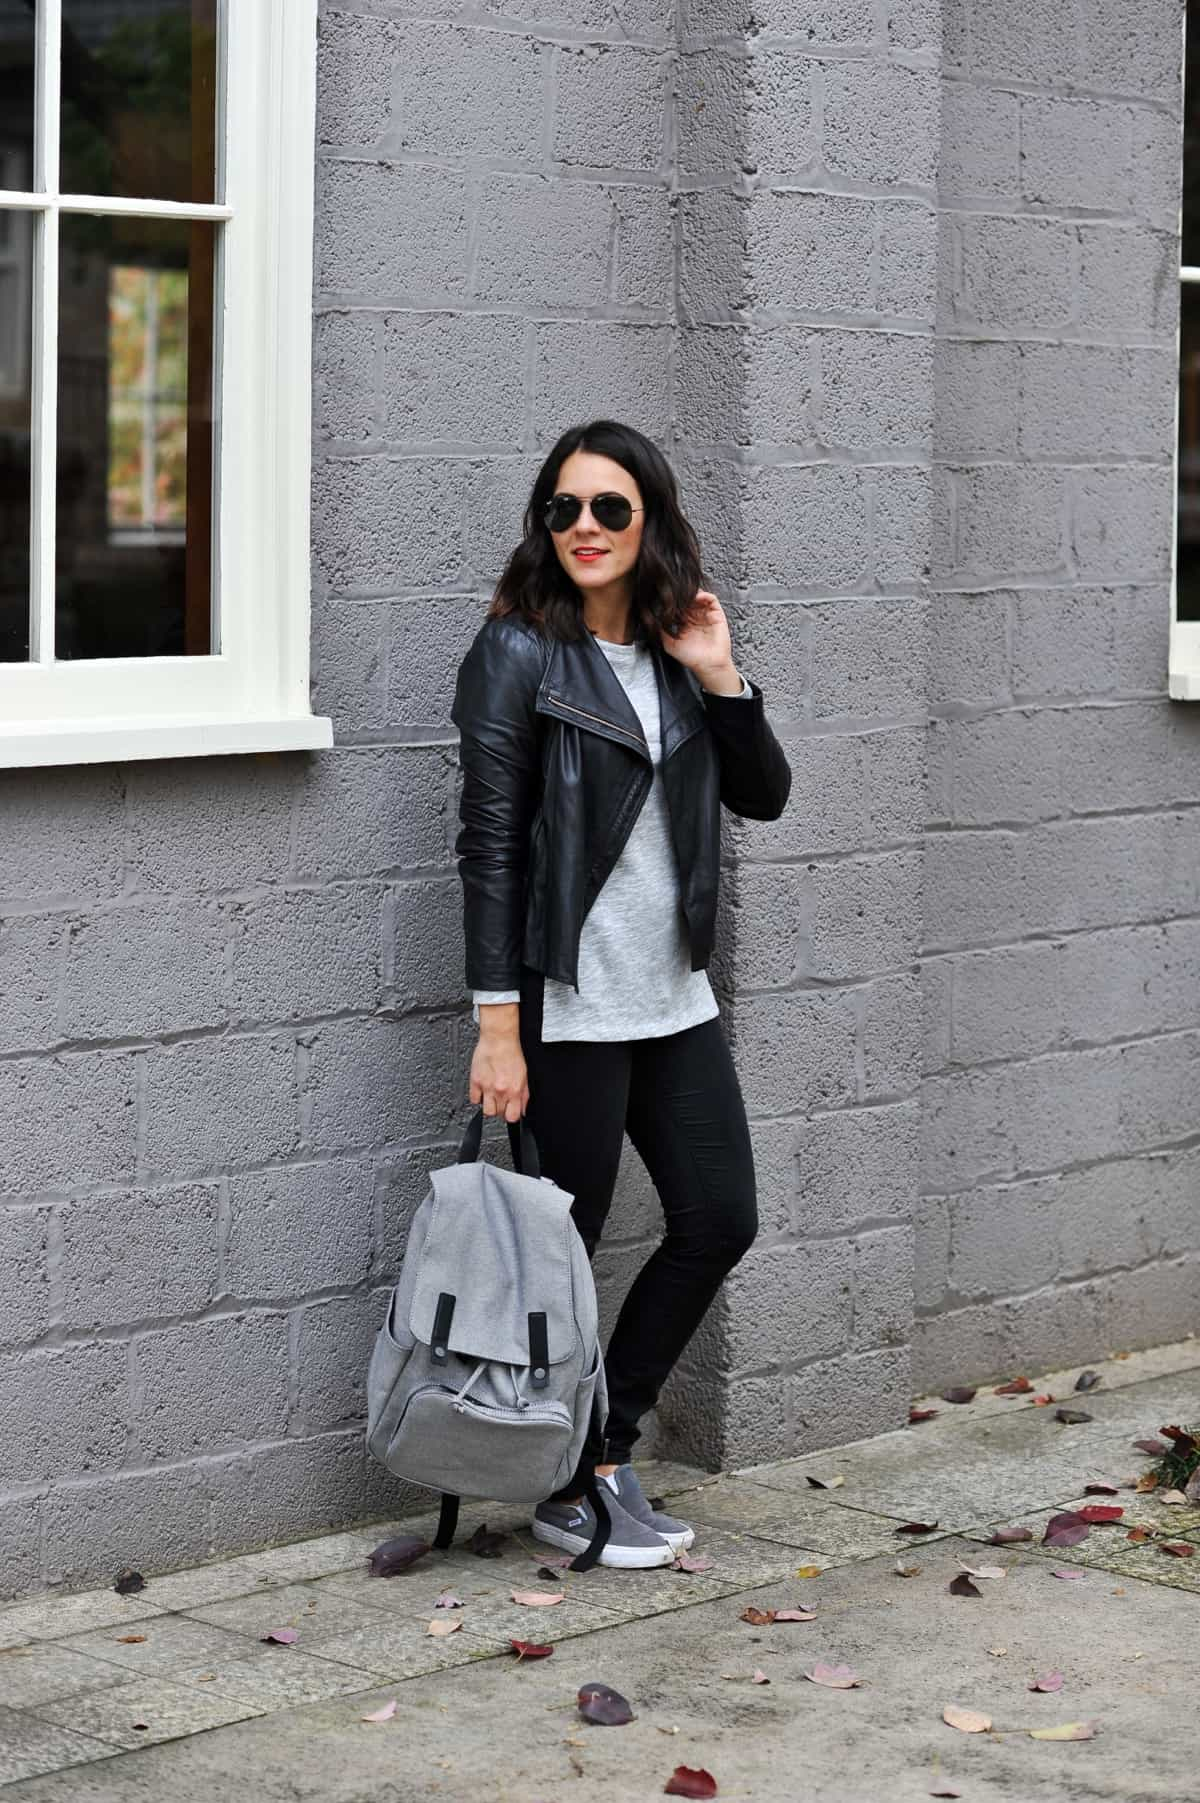 Everlane backpack, how to style a backpack, best everyday backpack, Black and grey outfit, how to style a backpack, casual outfit ideas via @mystylevita - 17